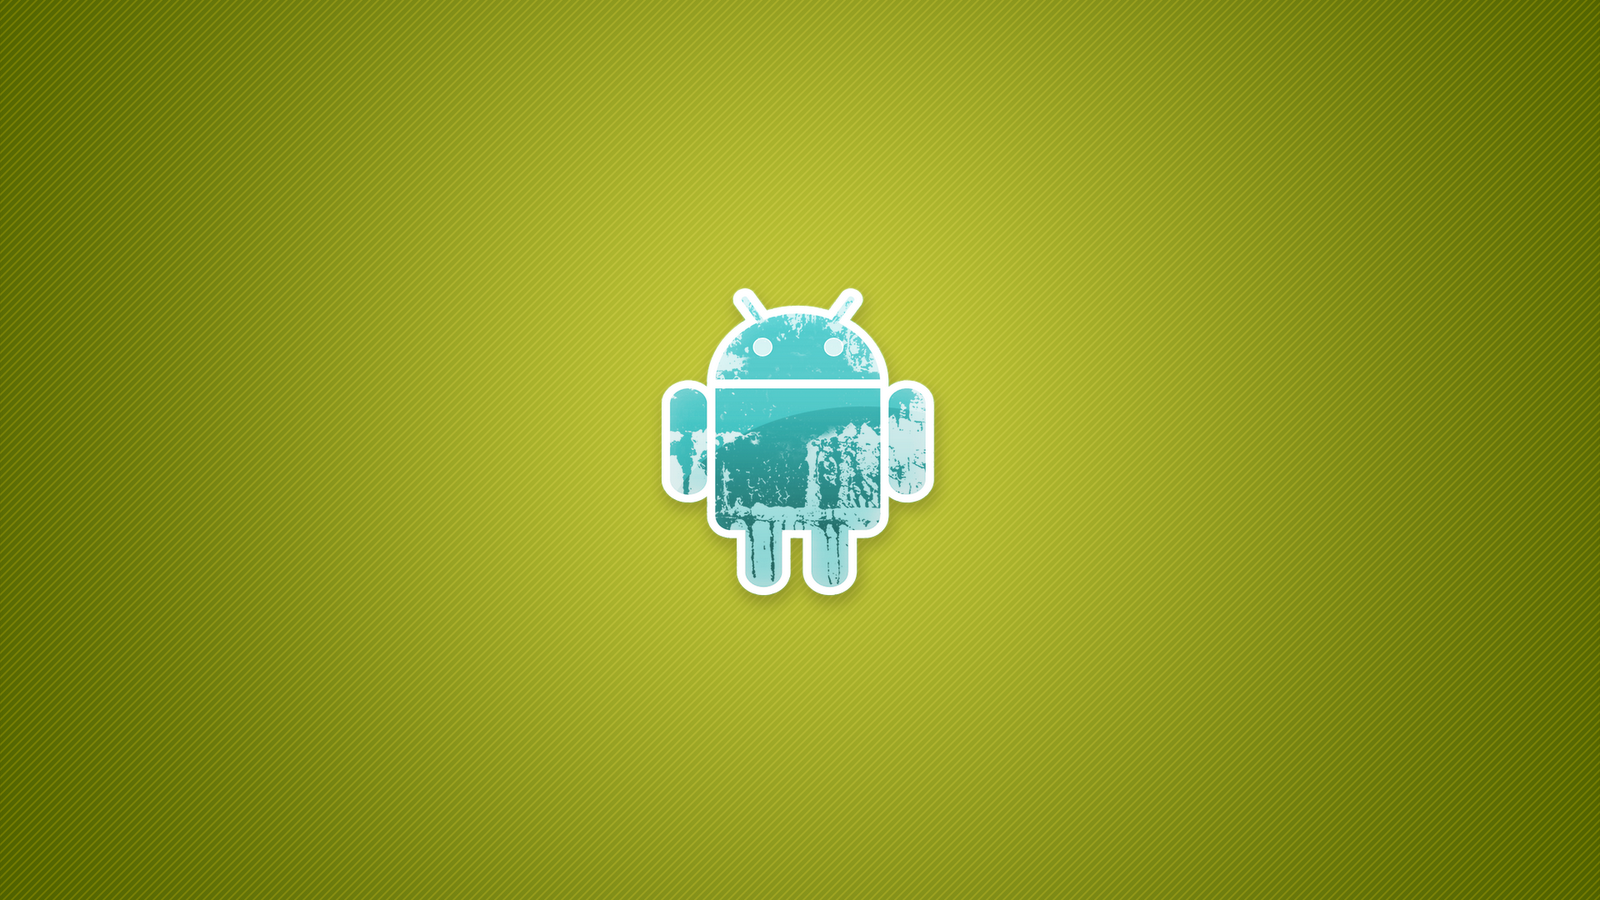 Wallpapers For Android: Android HD Wallpaper For Tablet